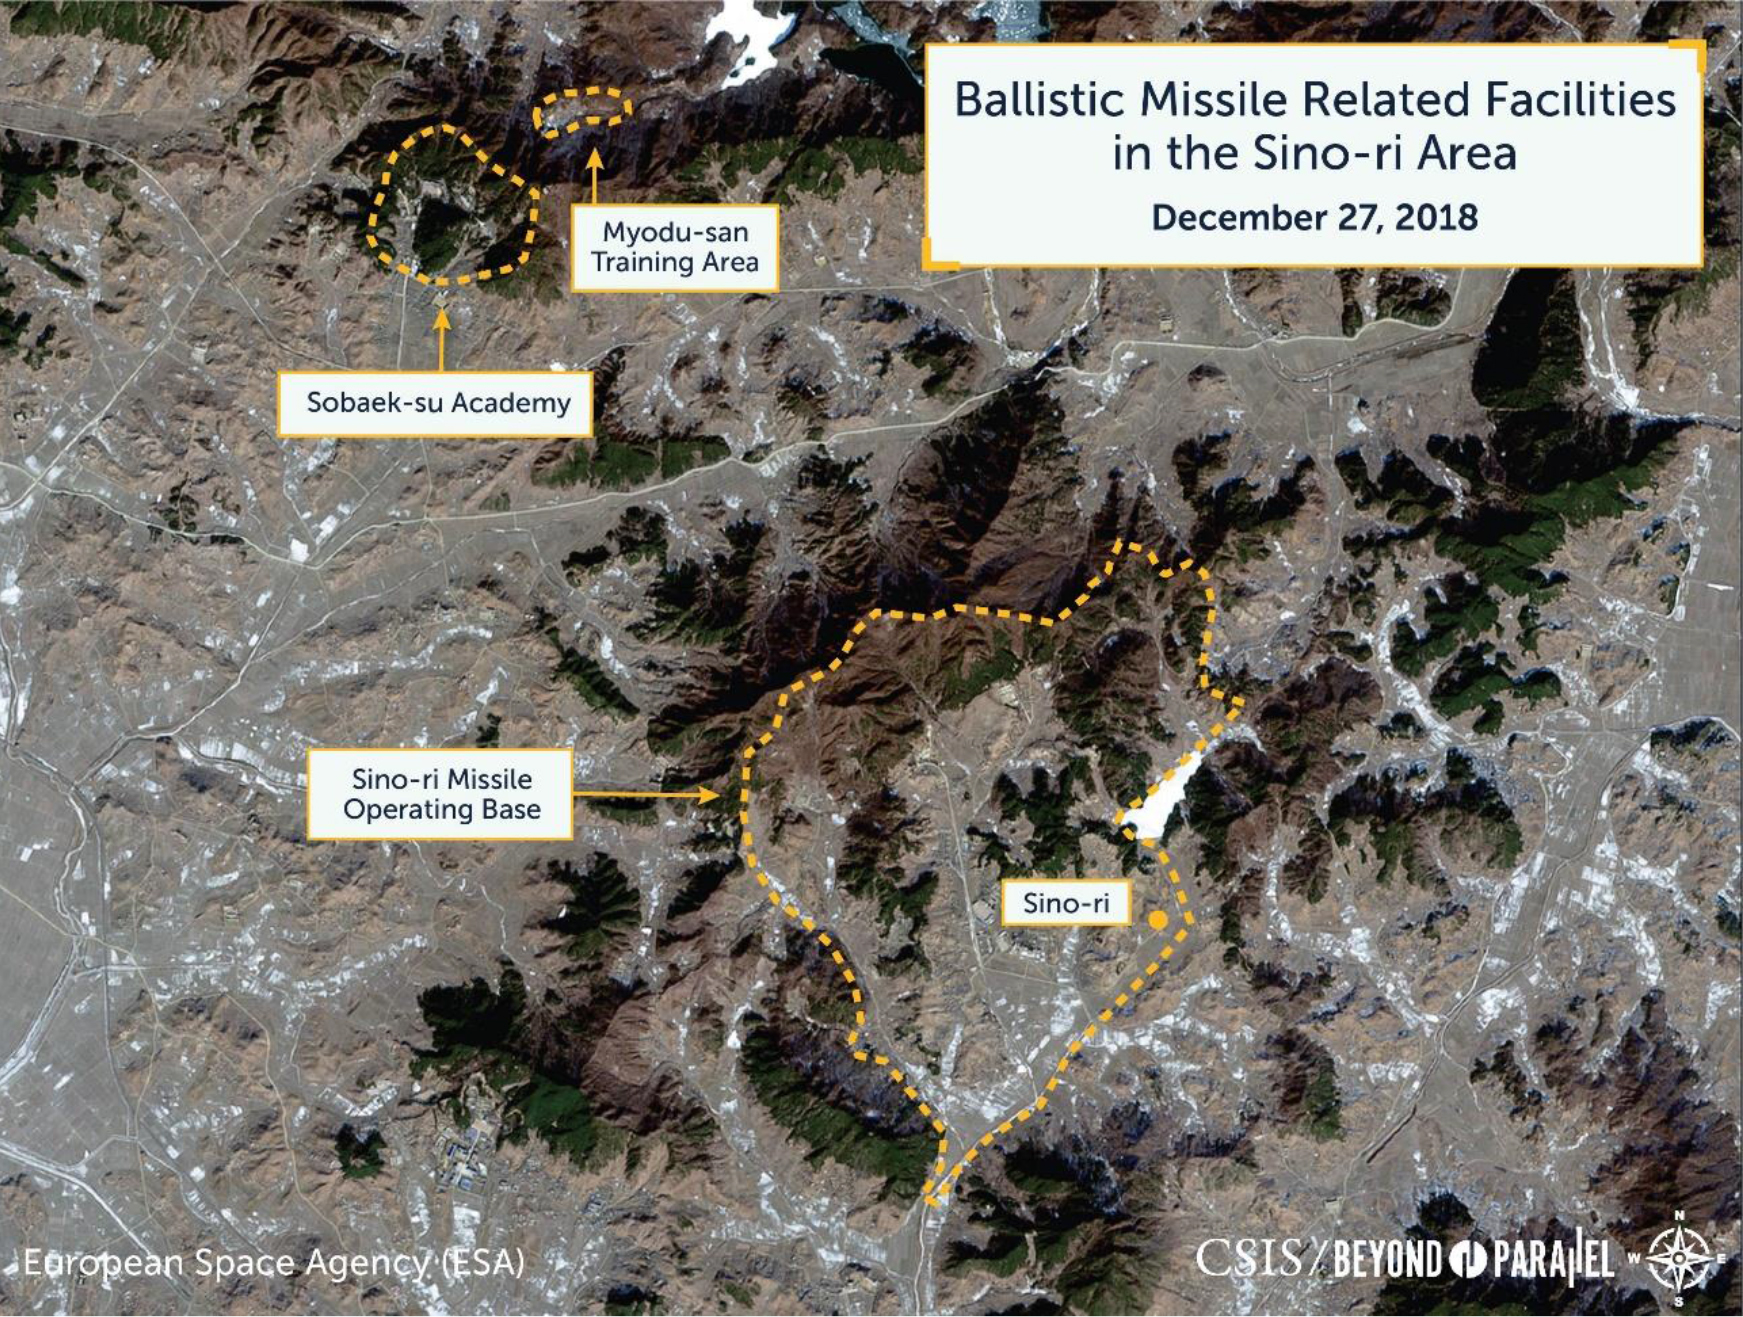 Overview of the Sino-ri Missile Operating Base, Sobaek-su Academy, and Myodu-san training area